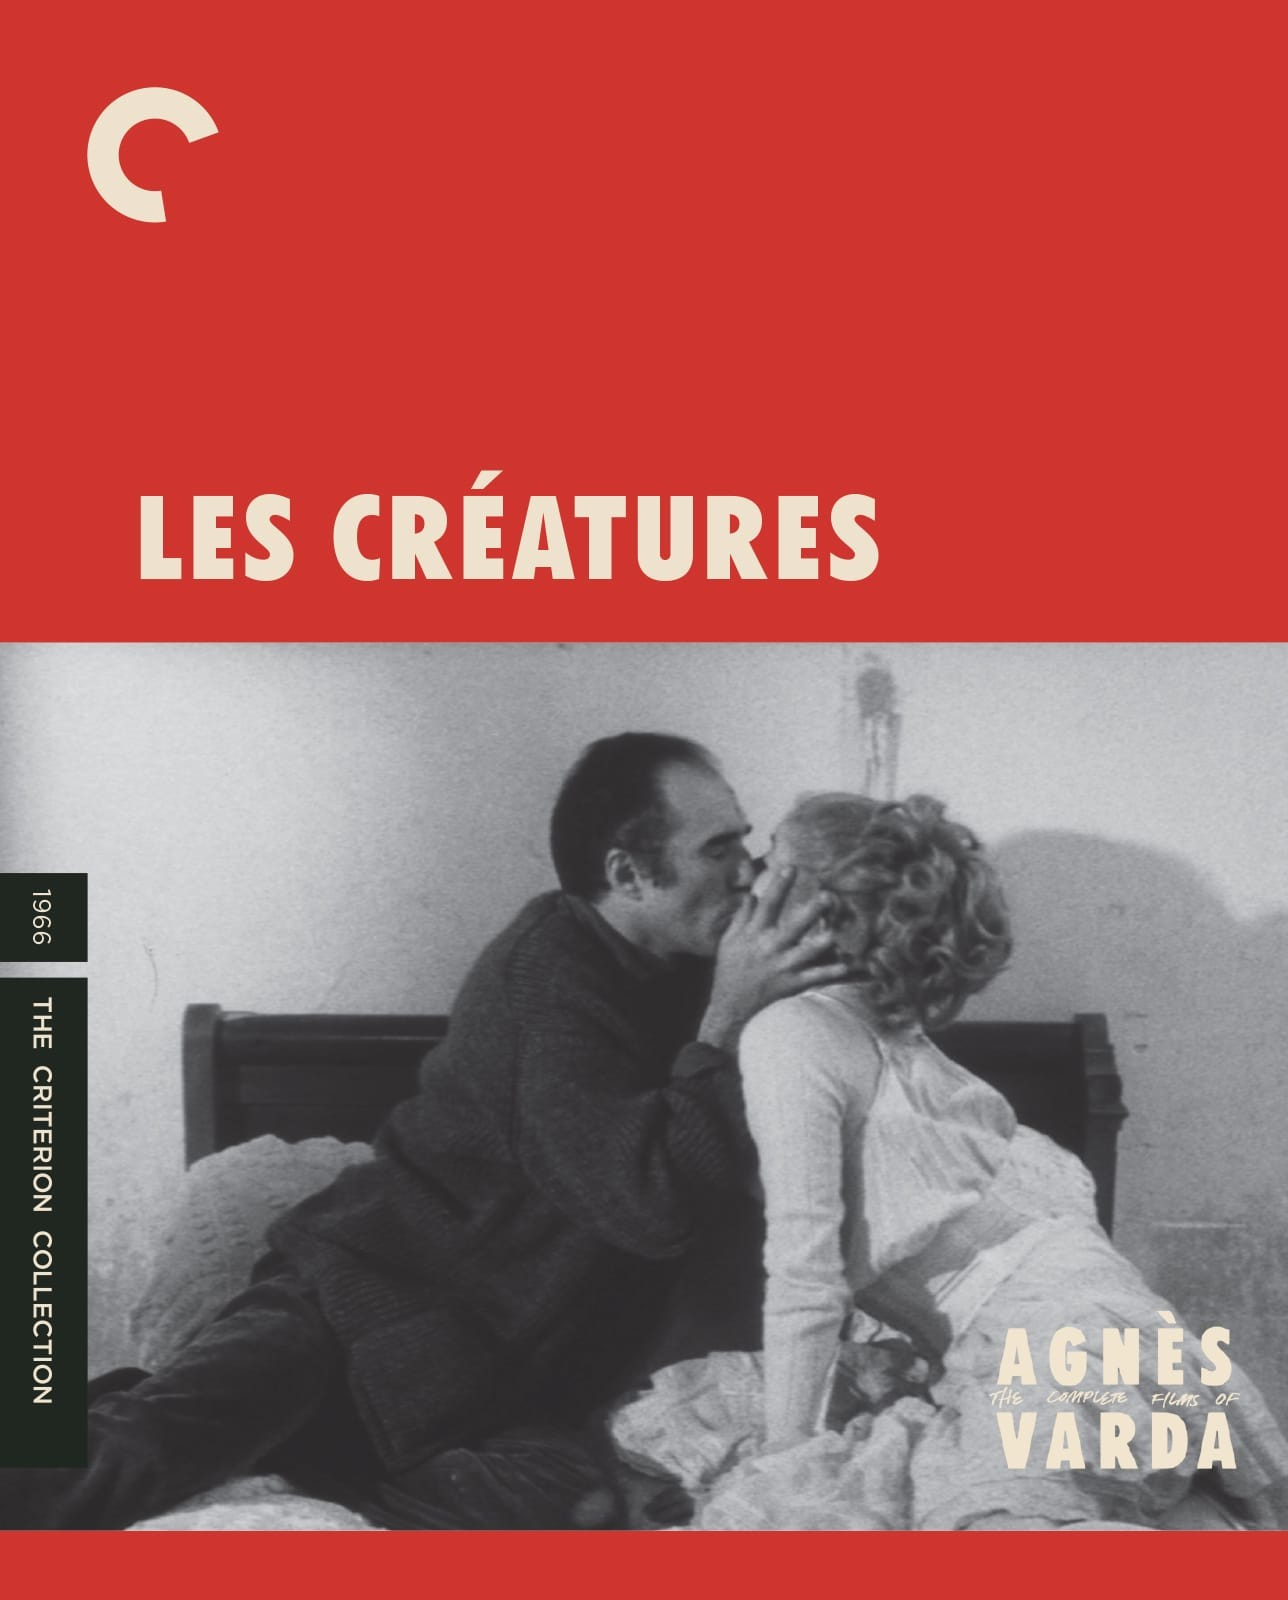 Les créatures (1966) | The Criterion Collection